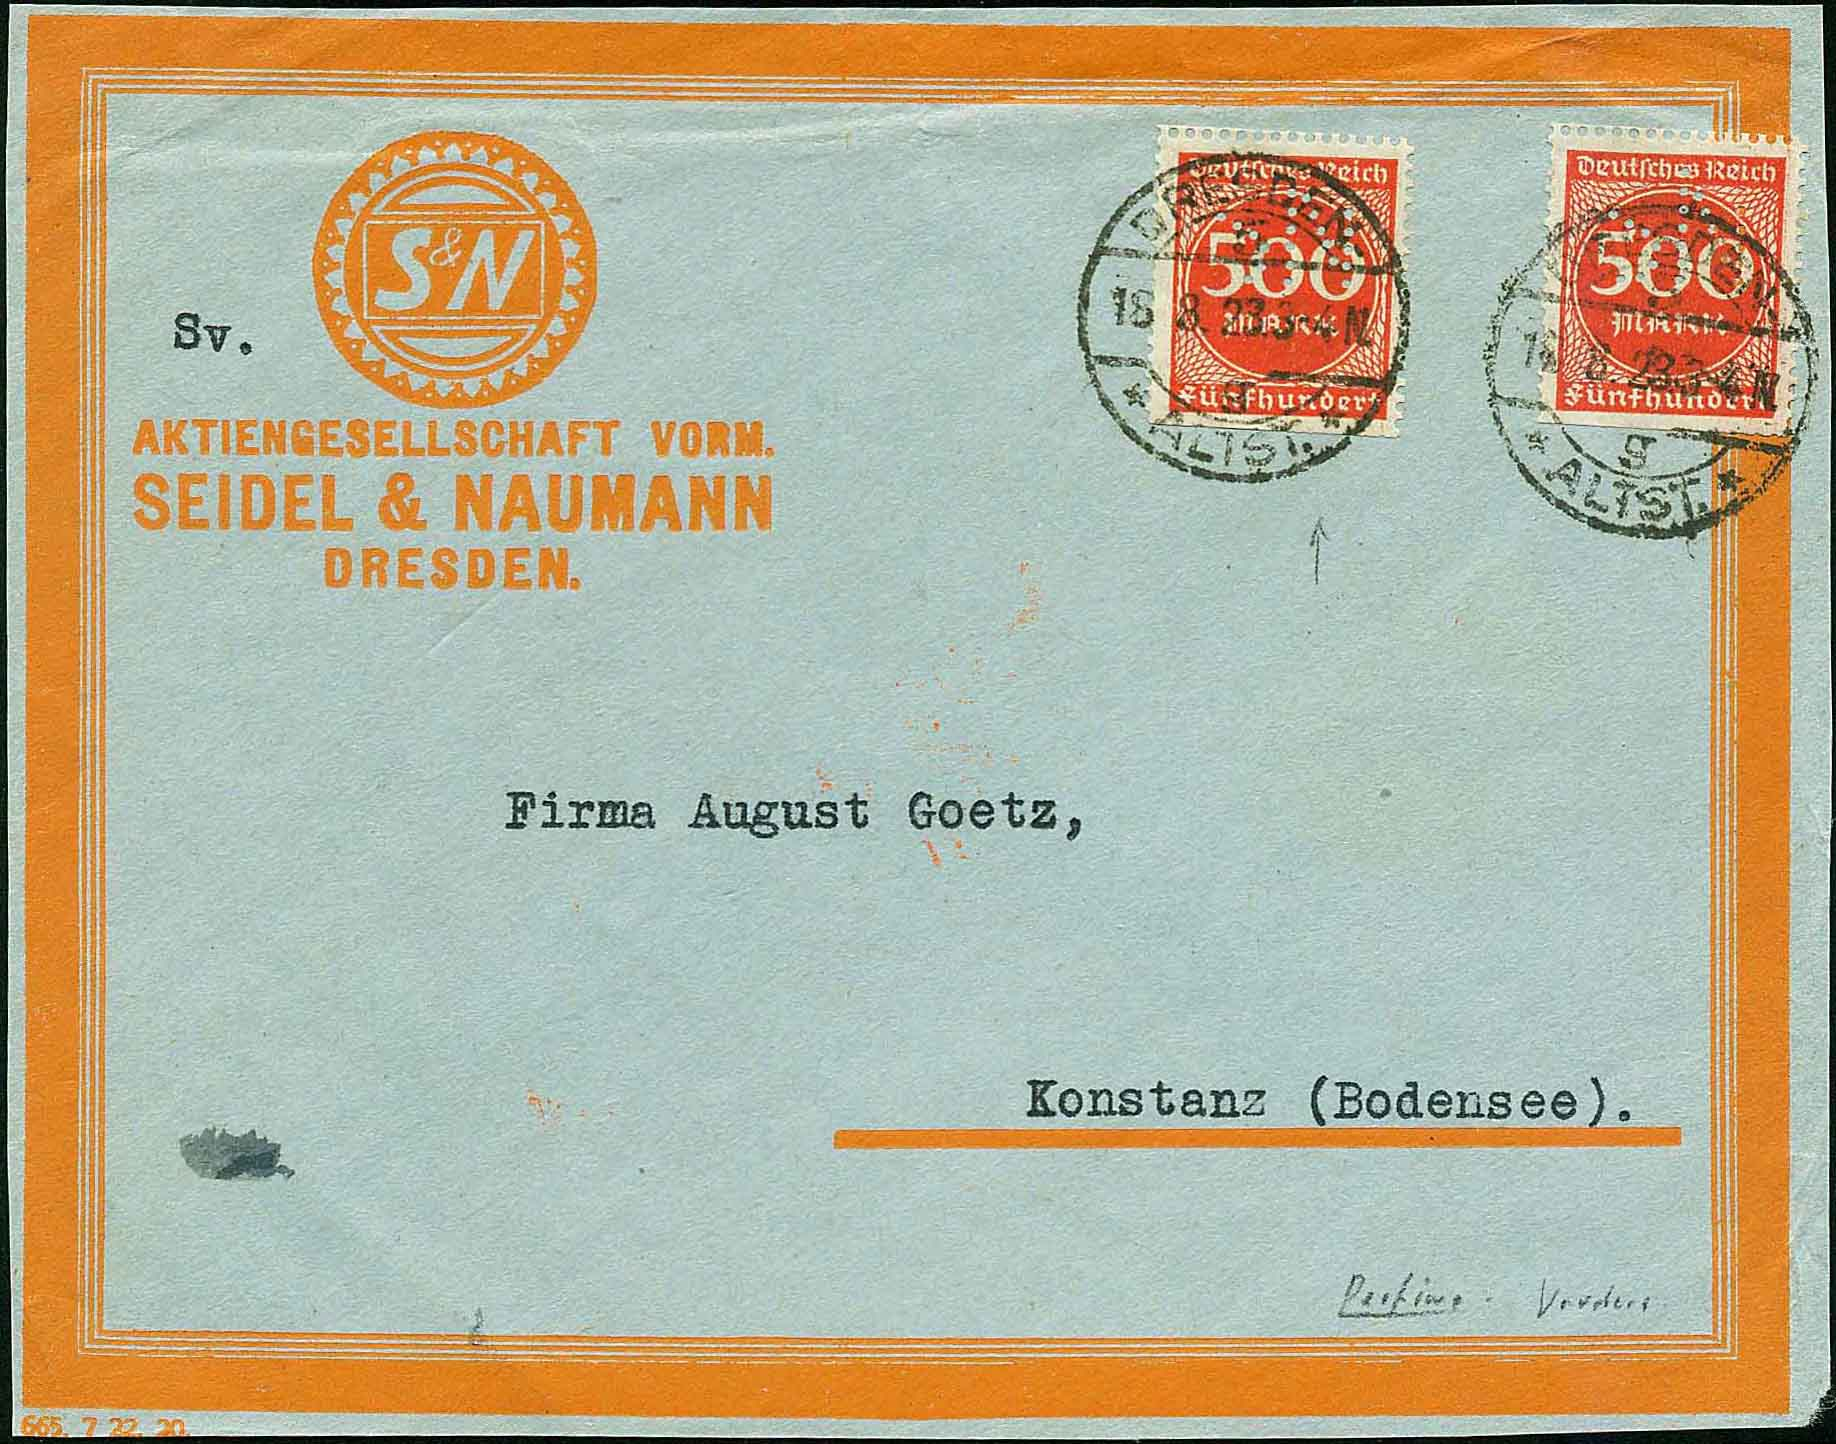 Cover with Seidel & Naumann Bicycle Company Perfin